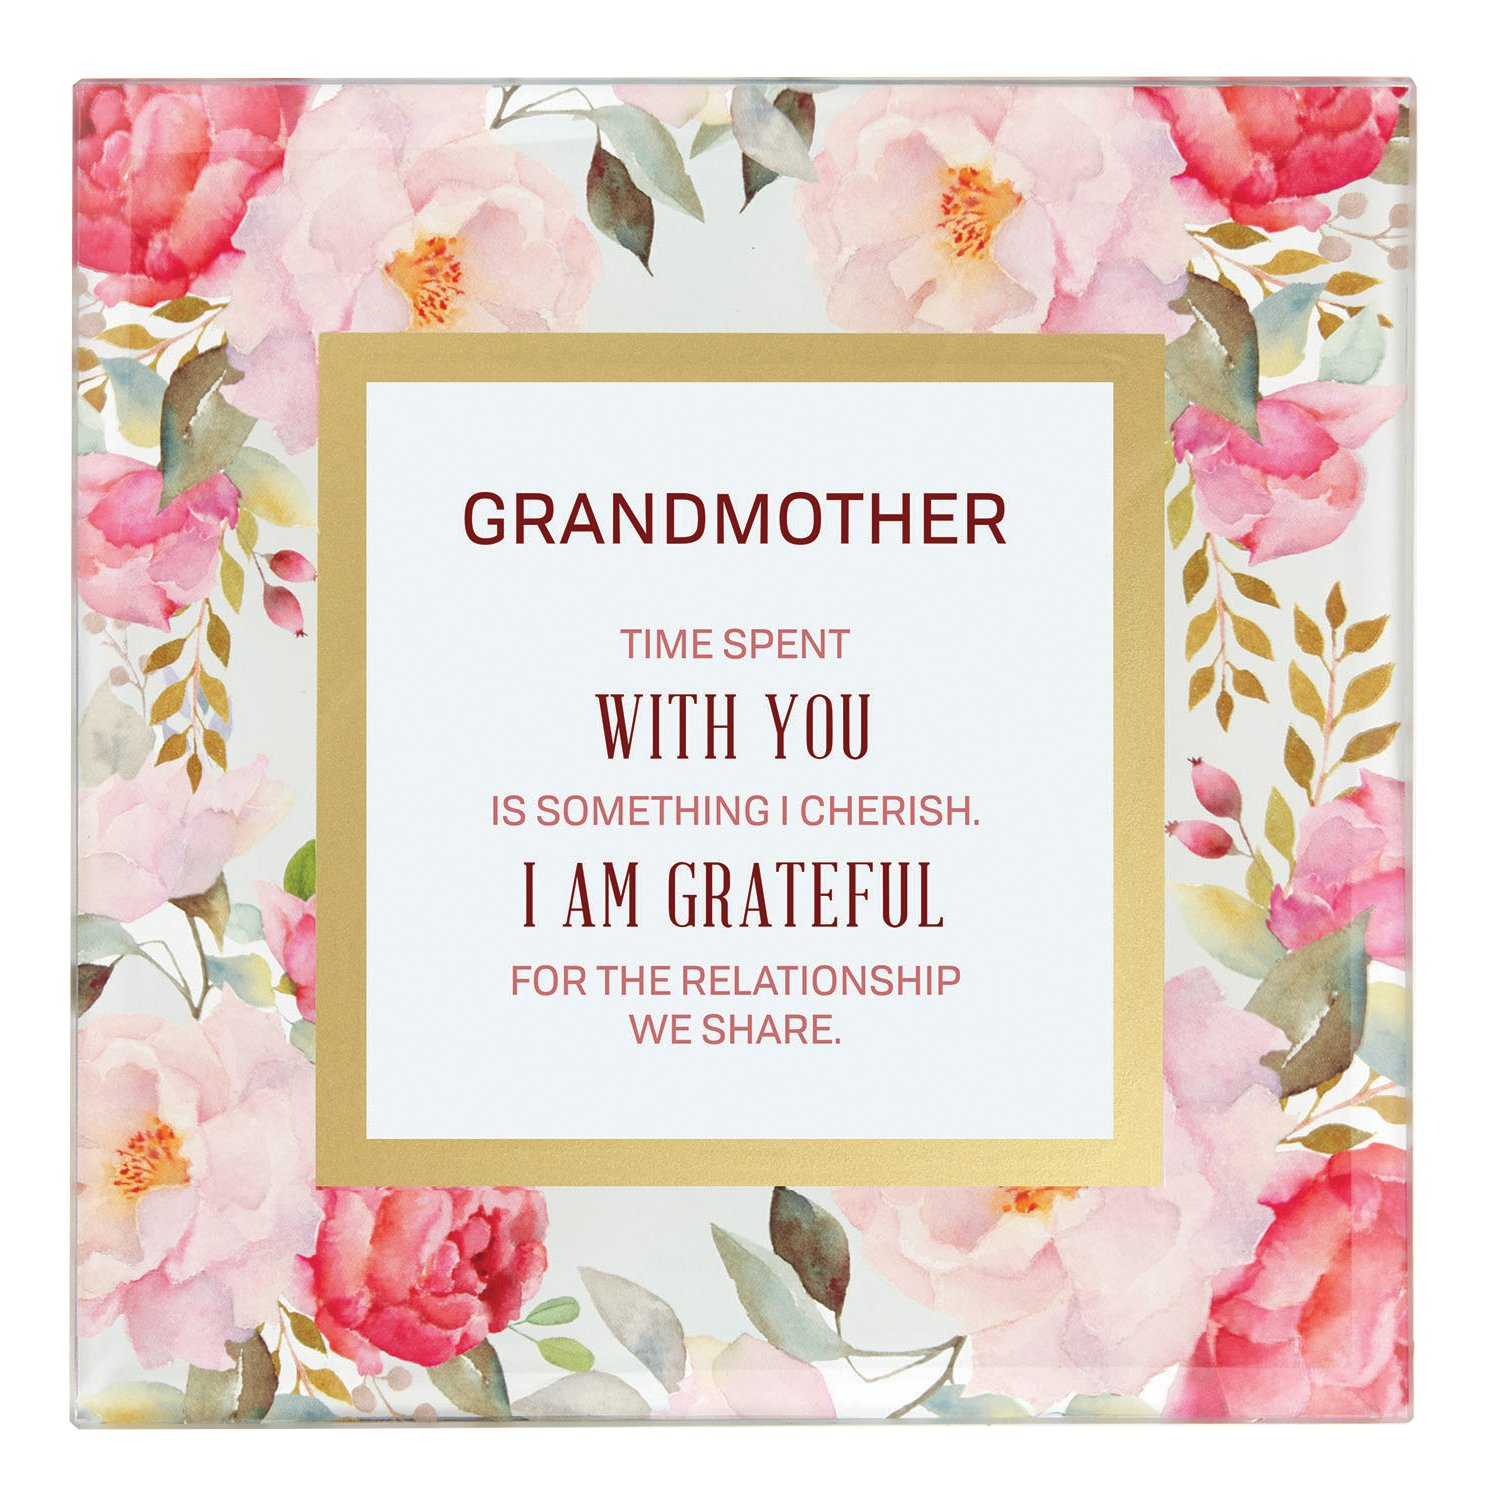 CB Gift Heartfelt Collection-LoveLea Essence Pink Floral Glass Framed Sentiment 7x7-Inches Like A Mother